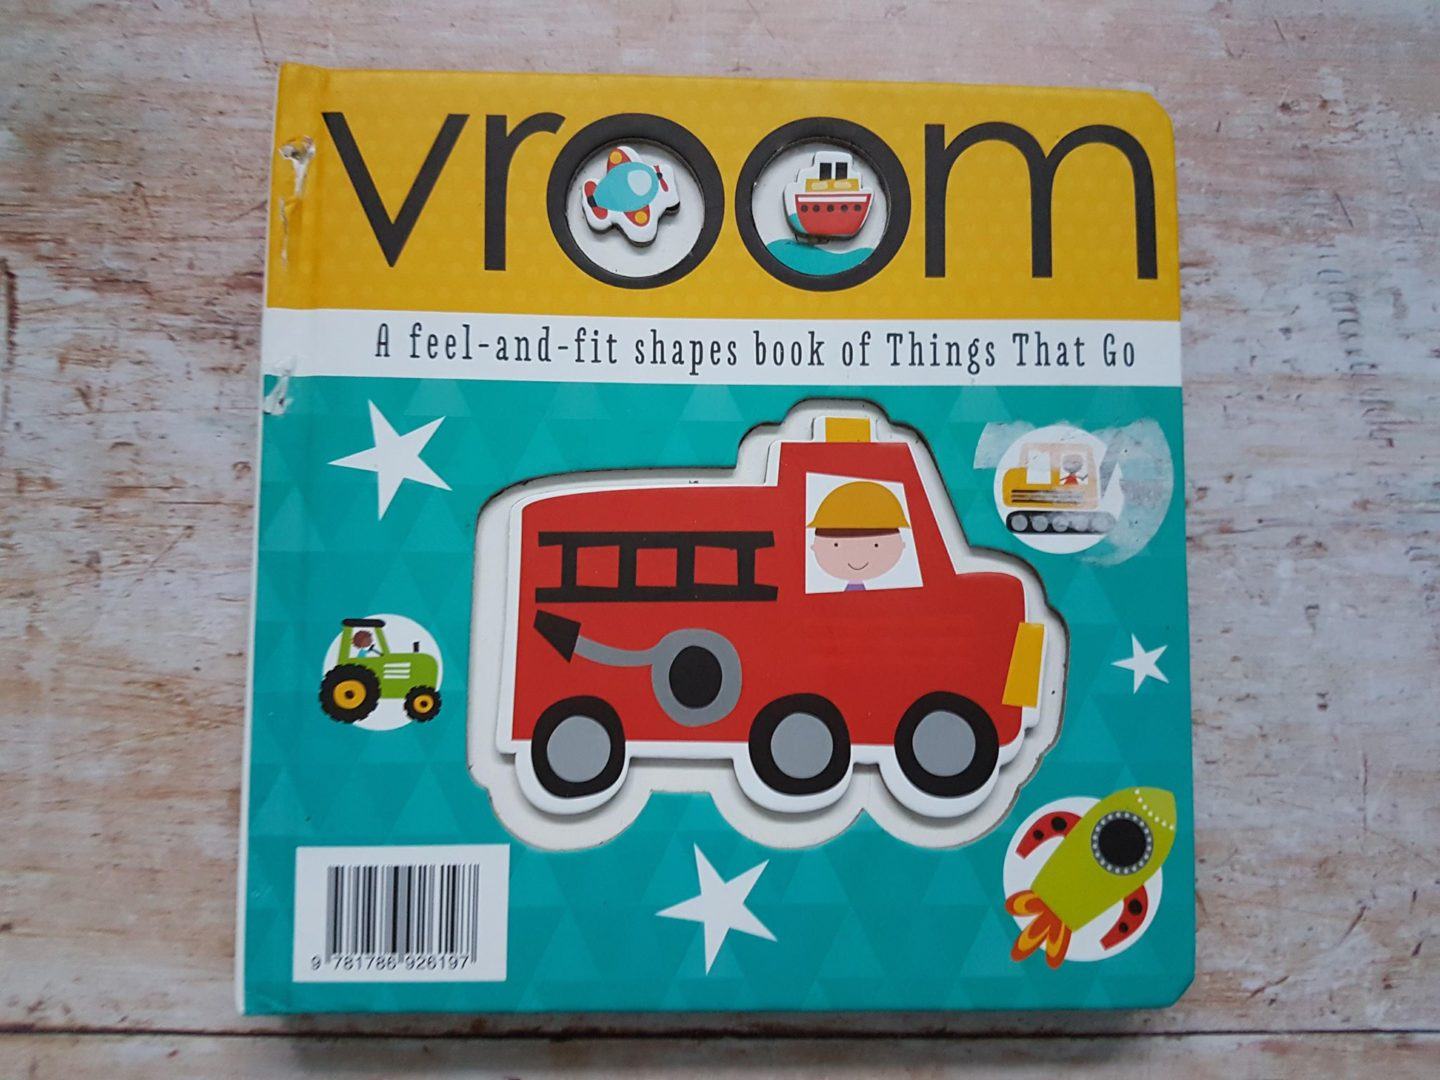 Vroom by Annie Sampson